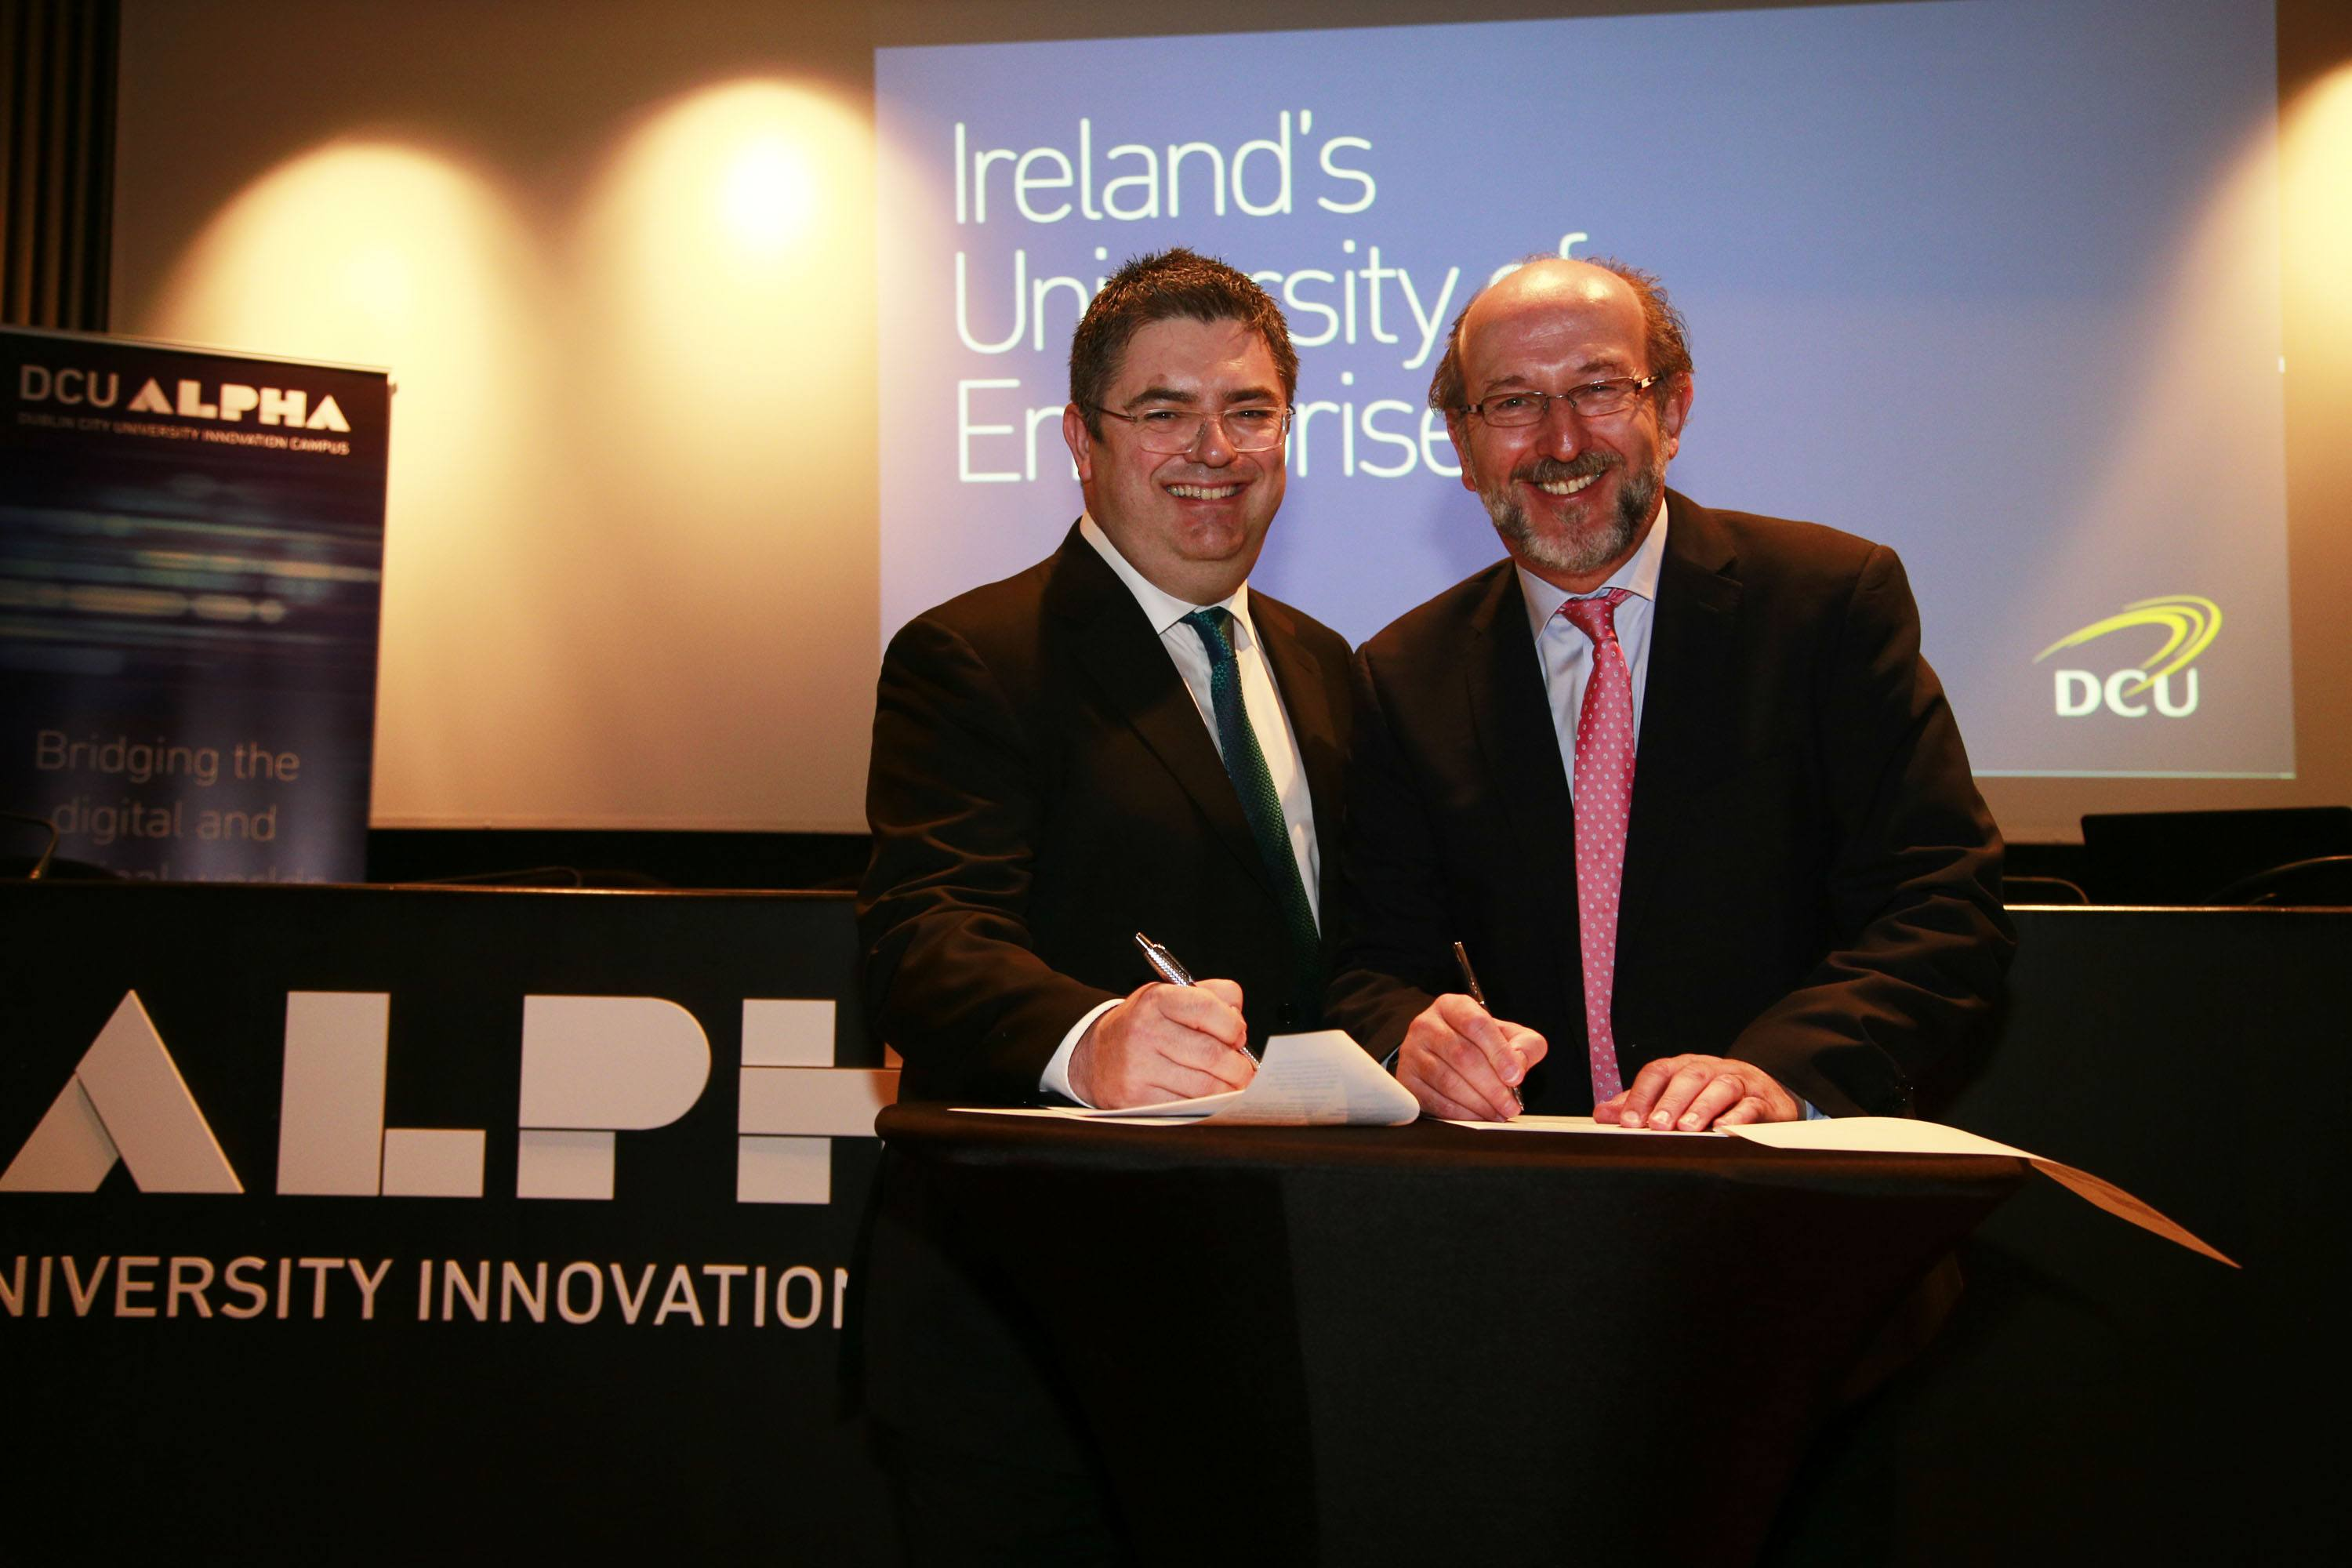 REPRODUCTION FREE 25/01/2017 - NEWS - DCU joins forces with Intel to foster talent and develop advanced technologies Pictured were Eamonn Sinnott, General Manager, Intel Ireland and Vice President of Intel's Technology Manufacturing Group and Professor Brian MacCraith, President of DCU. Photograph Nick Bradshaw Dublin City University and Intel have today signed an agreement which will see the two organisations collaborate on talent development and on technologies that have the potential to transform how we live, learn, work and engage with the arts in the future. Building on more than two decades of partnership between DCU and Intel, the two organisations have now formalised their relationship and identified joint areas of interest for greater collaboration in research and innovation, shaping public policy in key areas and the development of future talent.